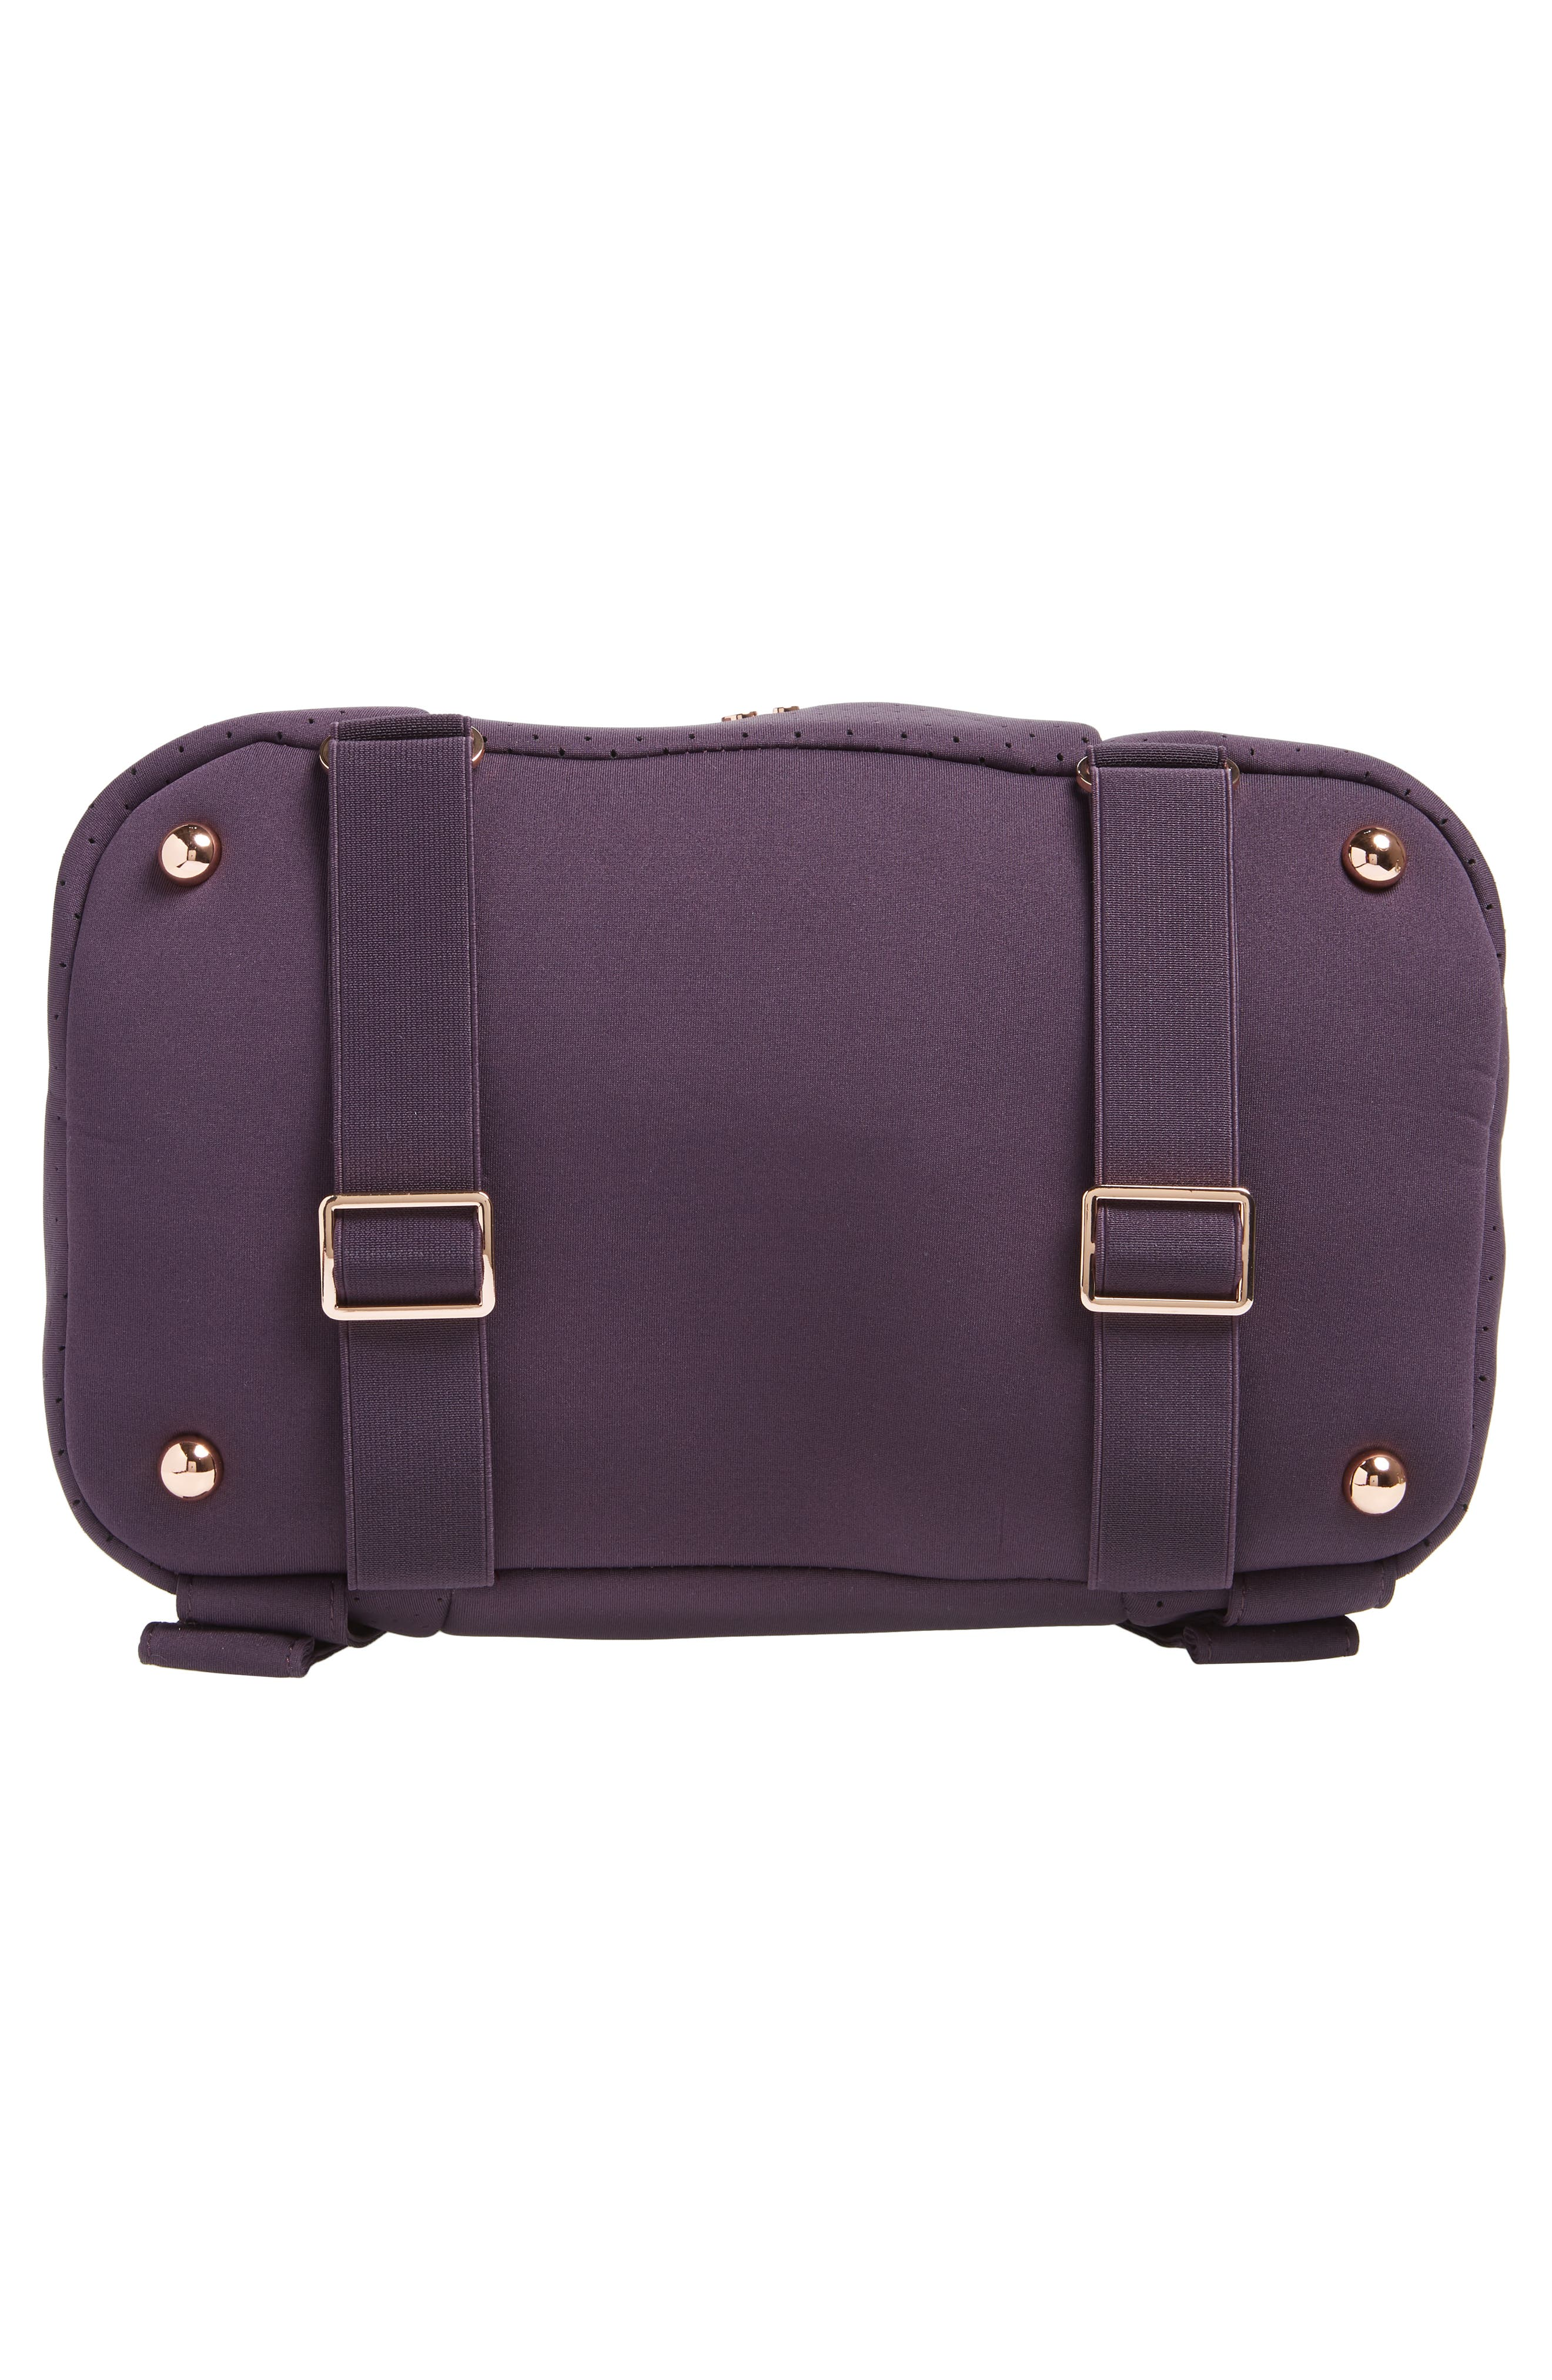 All Sport Backpack,                             Alternate thumbnail 6, color,                             AUBERGINE